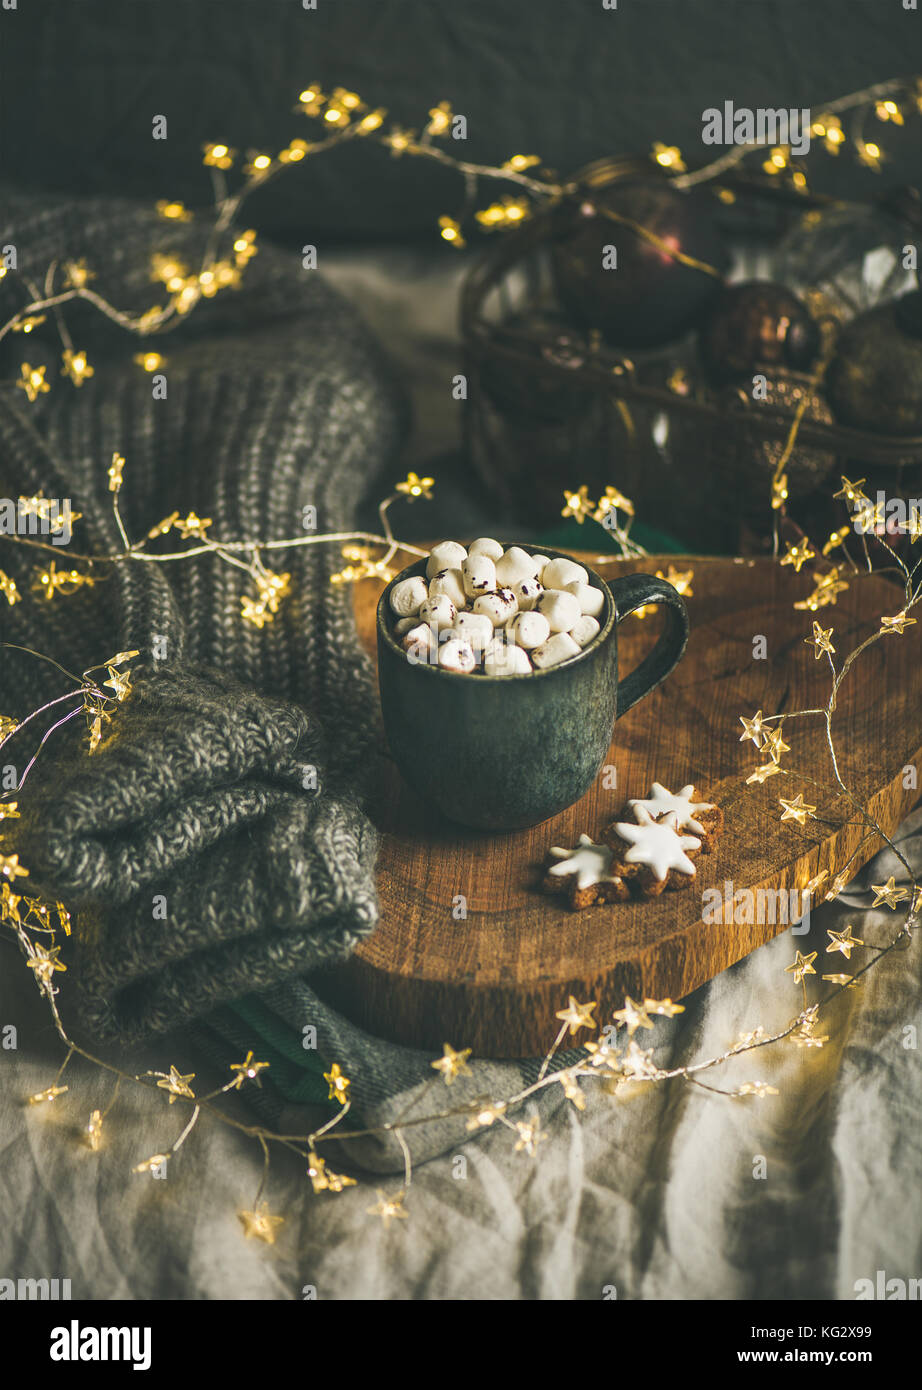 Christmas winter hot chocolate in mug with marshmallows and cookies - Stock Image